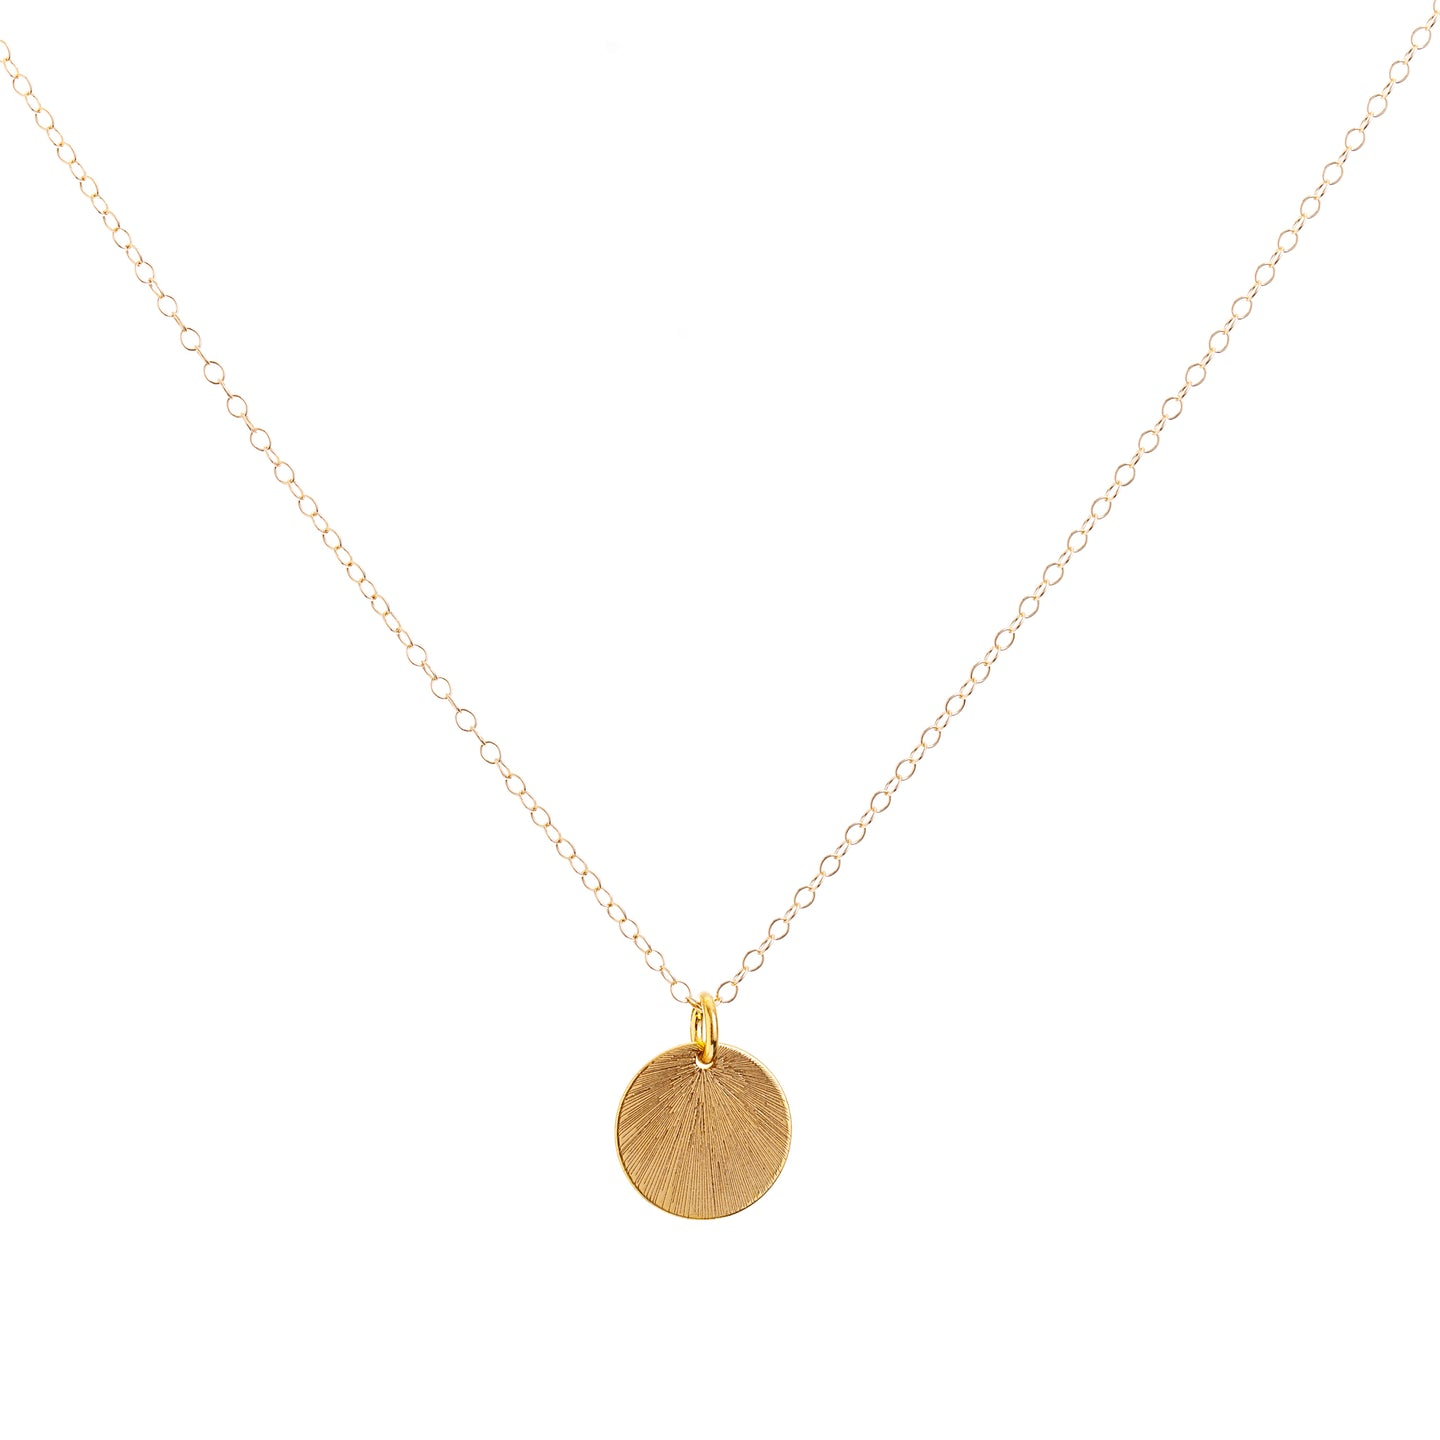 Minimal Gold Etched Medallion Necklace